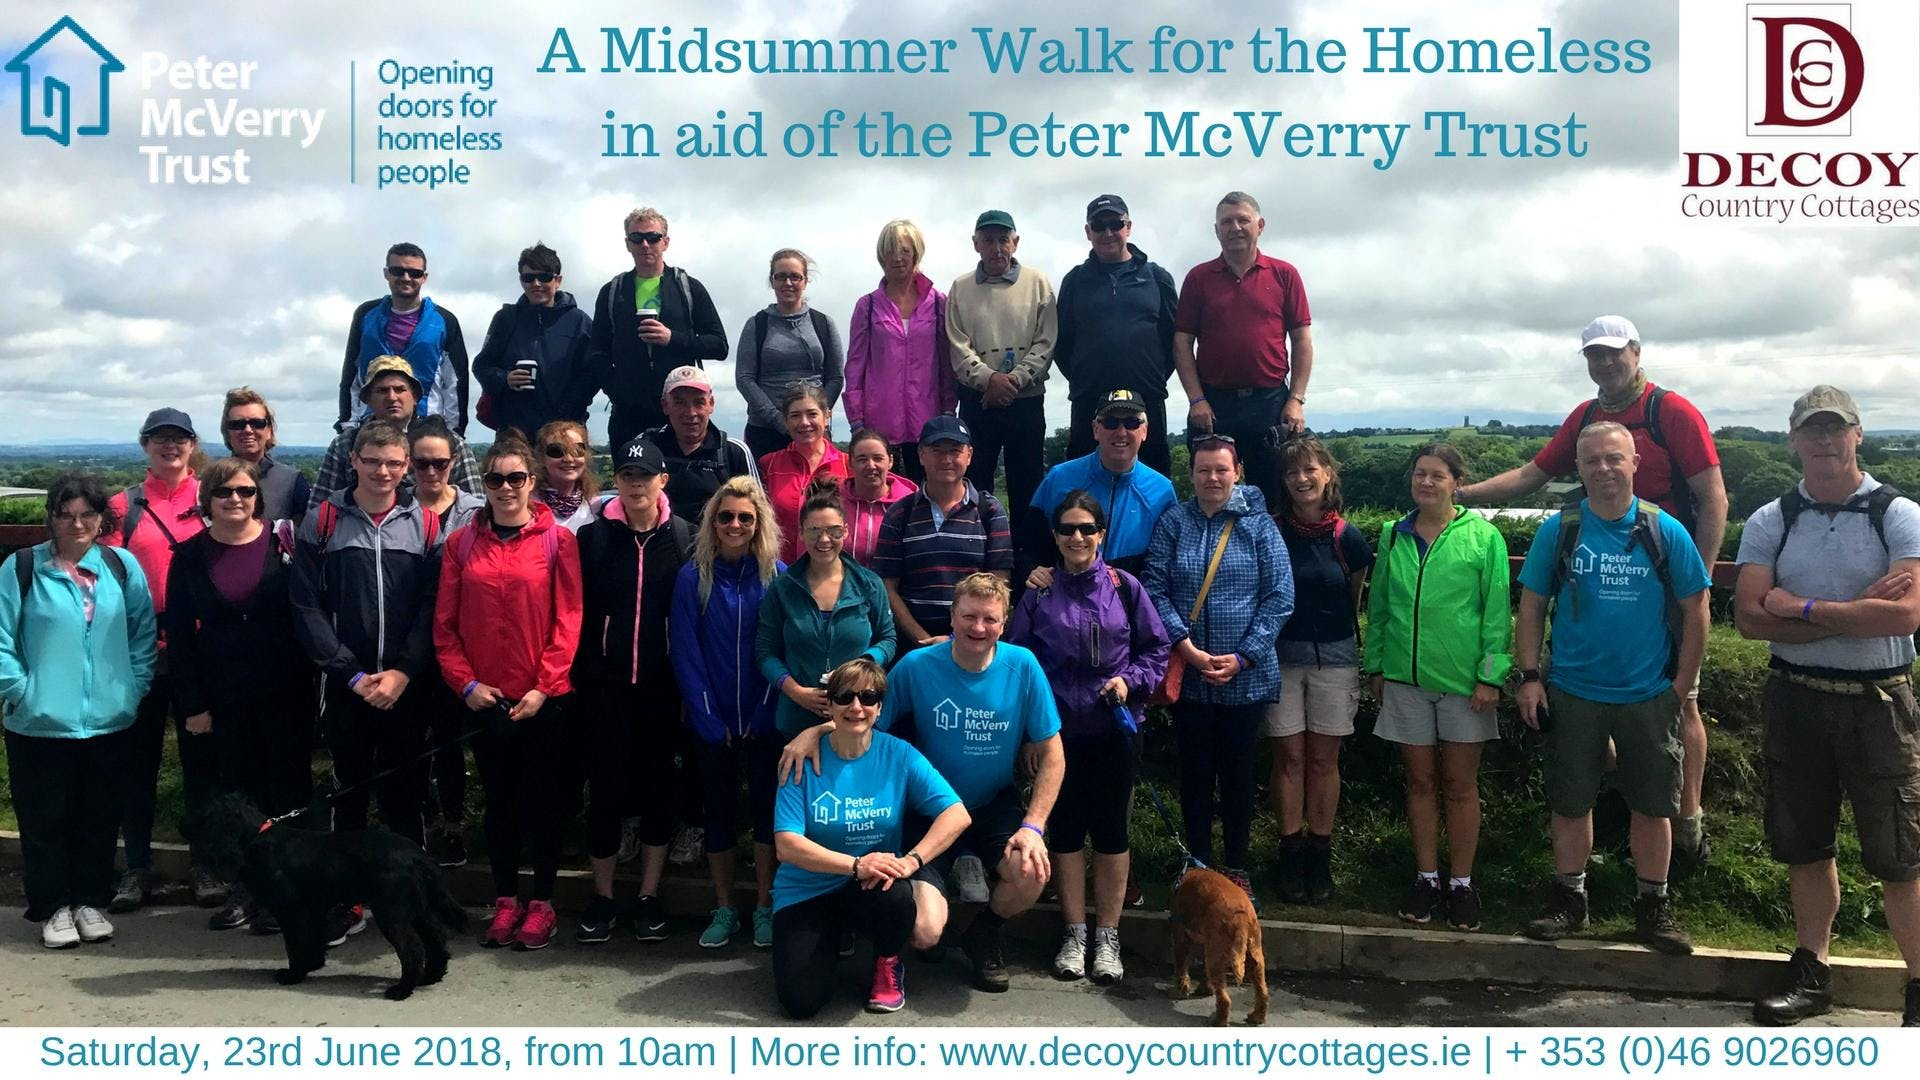 Second Annual Midsummer Walk For The Homeless